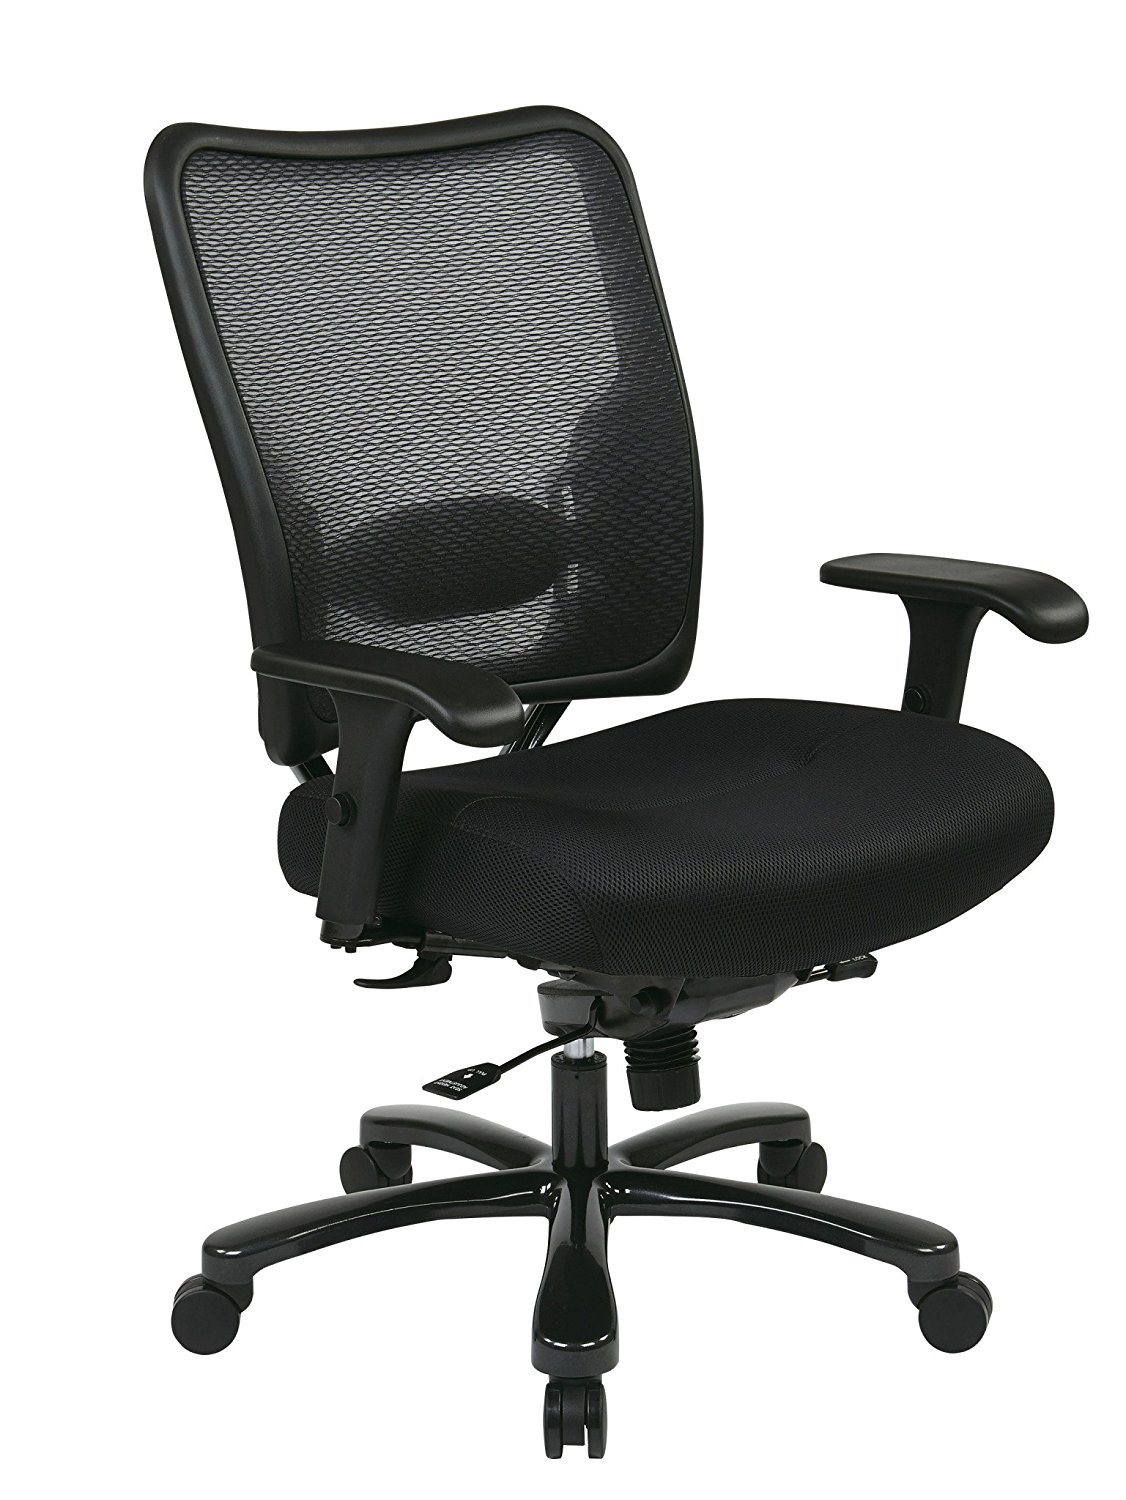 Best Office Chair 4 Best Office Chairs For Tall People In 2017 With Maximum Comfort